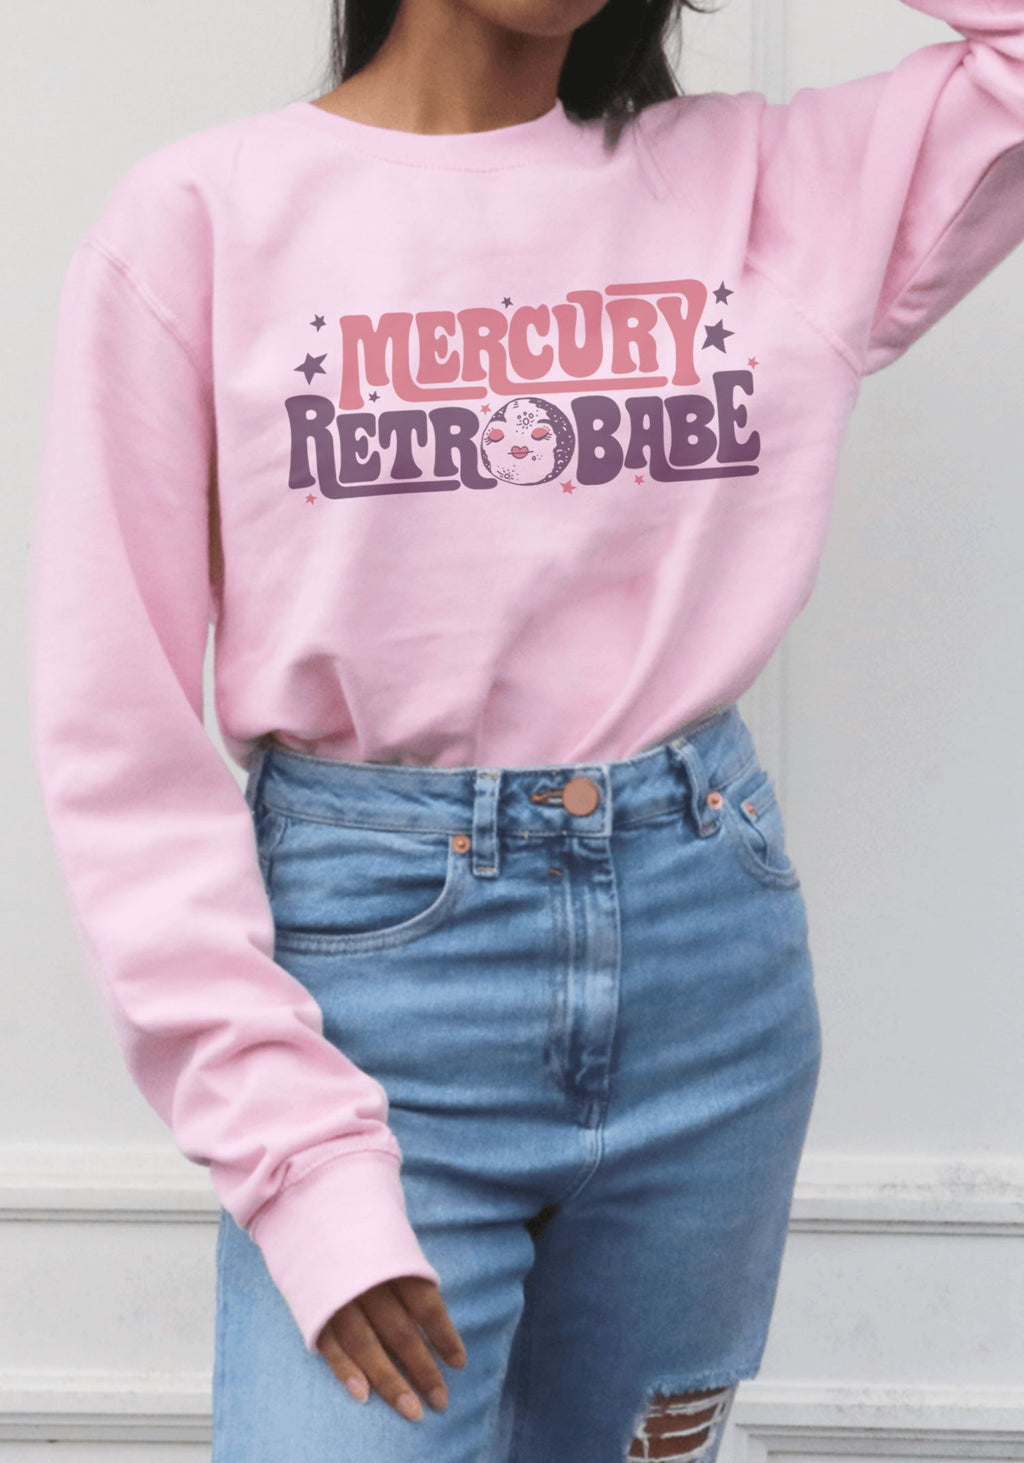 Mercury Retrobabe Sweatshirt